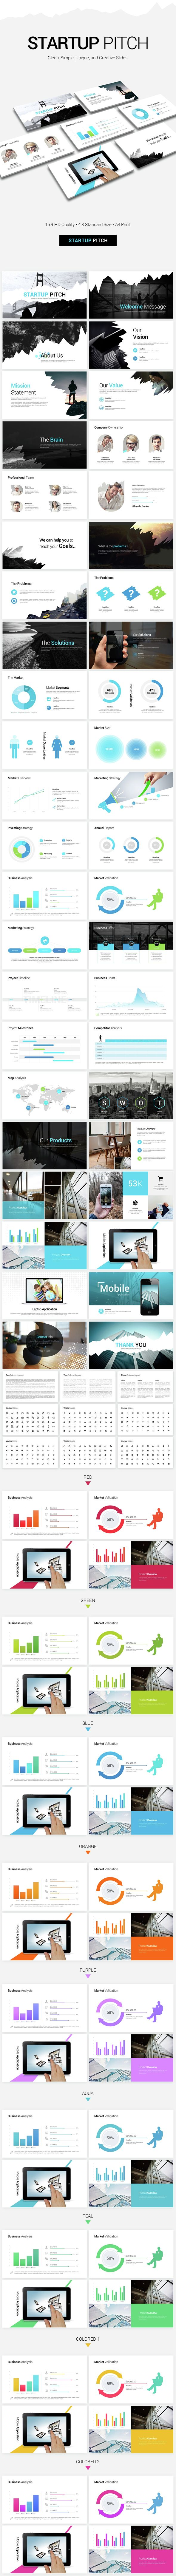 Startup Pitch PowerPoint Presentation Template. Download here: http://graphicriver.net/item/startup-pitch-presentation/15212639?ref=ksioks